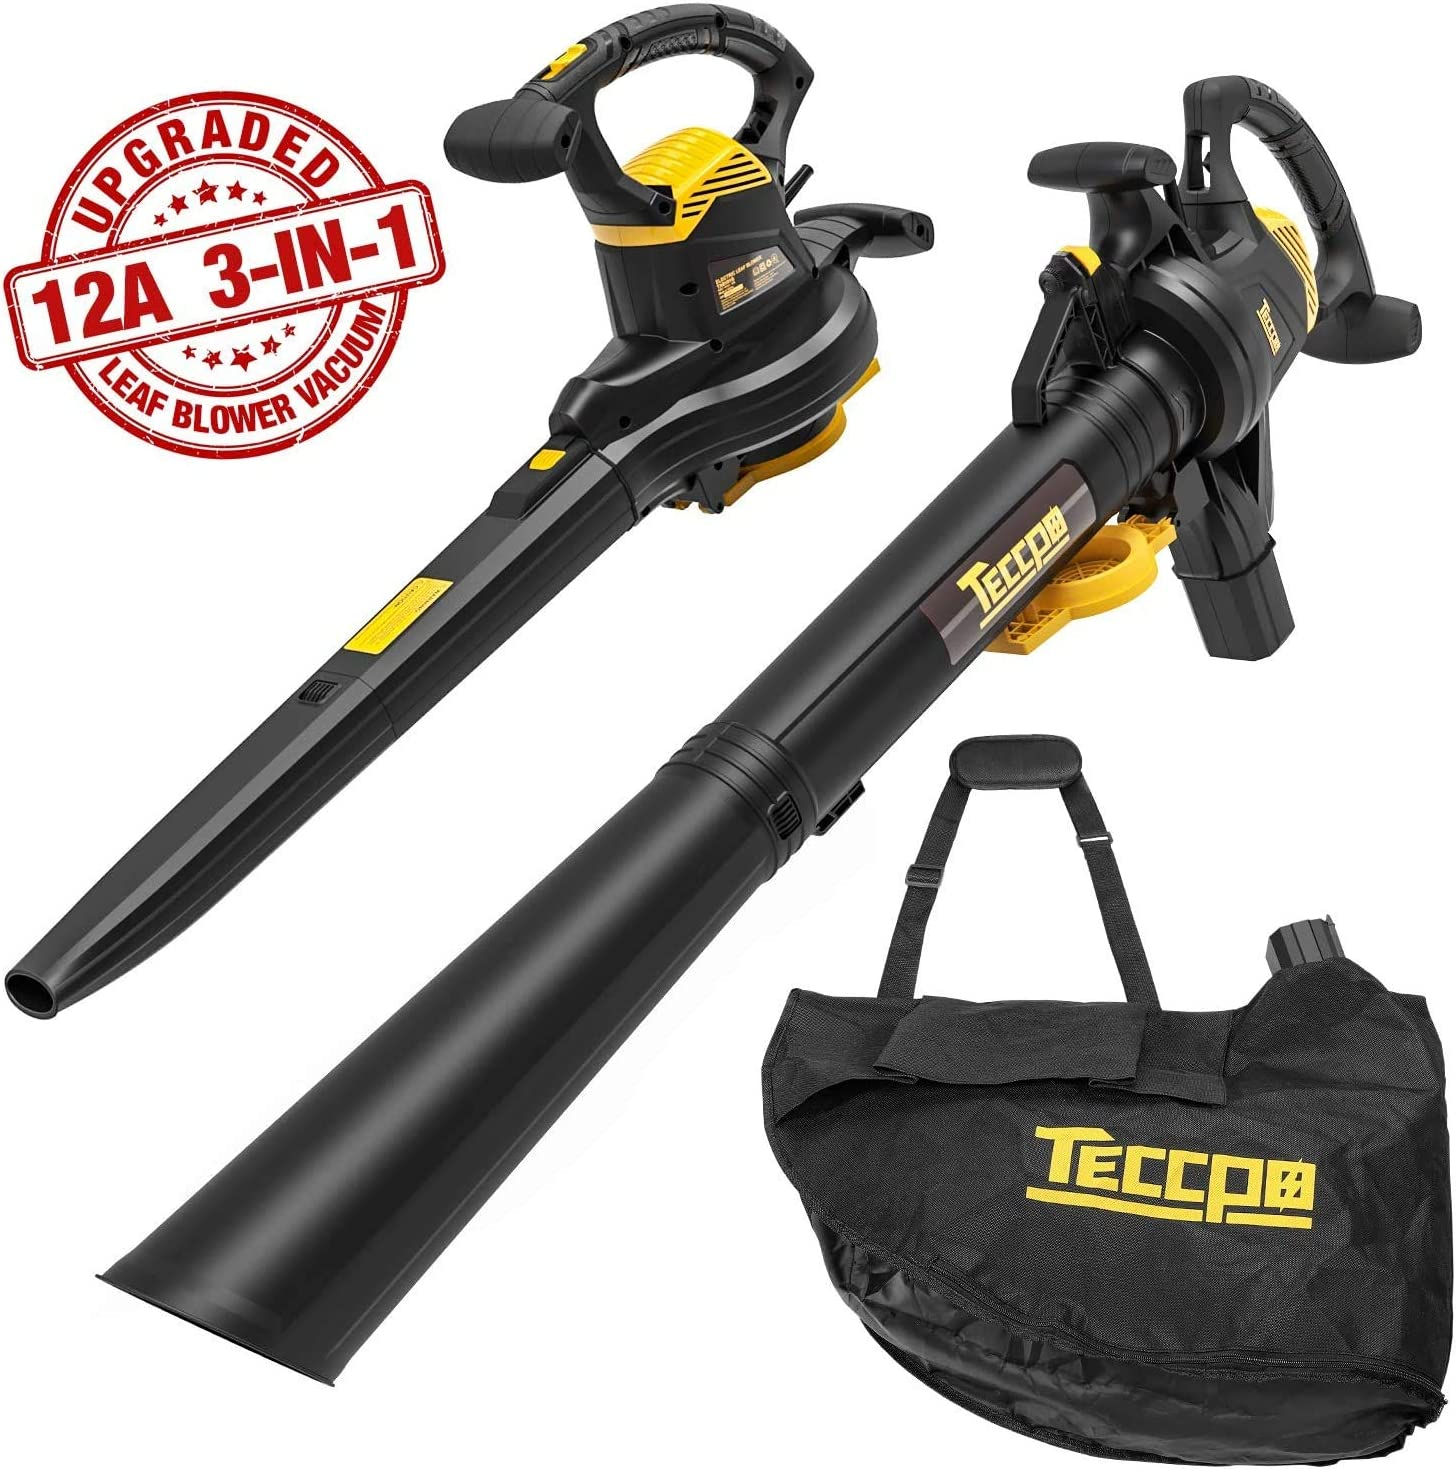 TP 3-in-1 Leaf Blower/Vacuum/Mulcher, 12 Amp Professional Leaf Vacuum, Variable Blow Speed of 170/250mph, Mulching Ration of 16:1, 280/410 CFM, Improved 40L Collection Bag - TABV01G